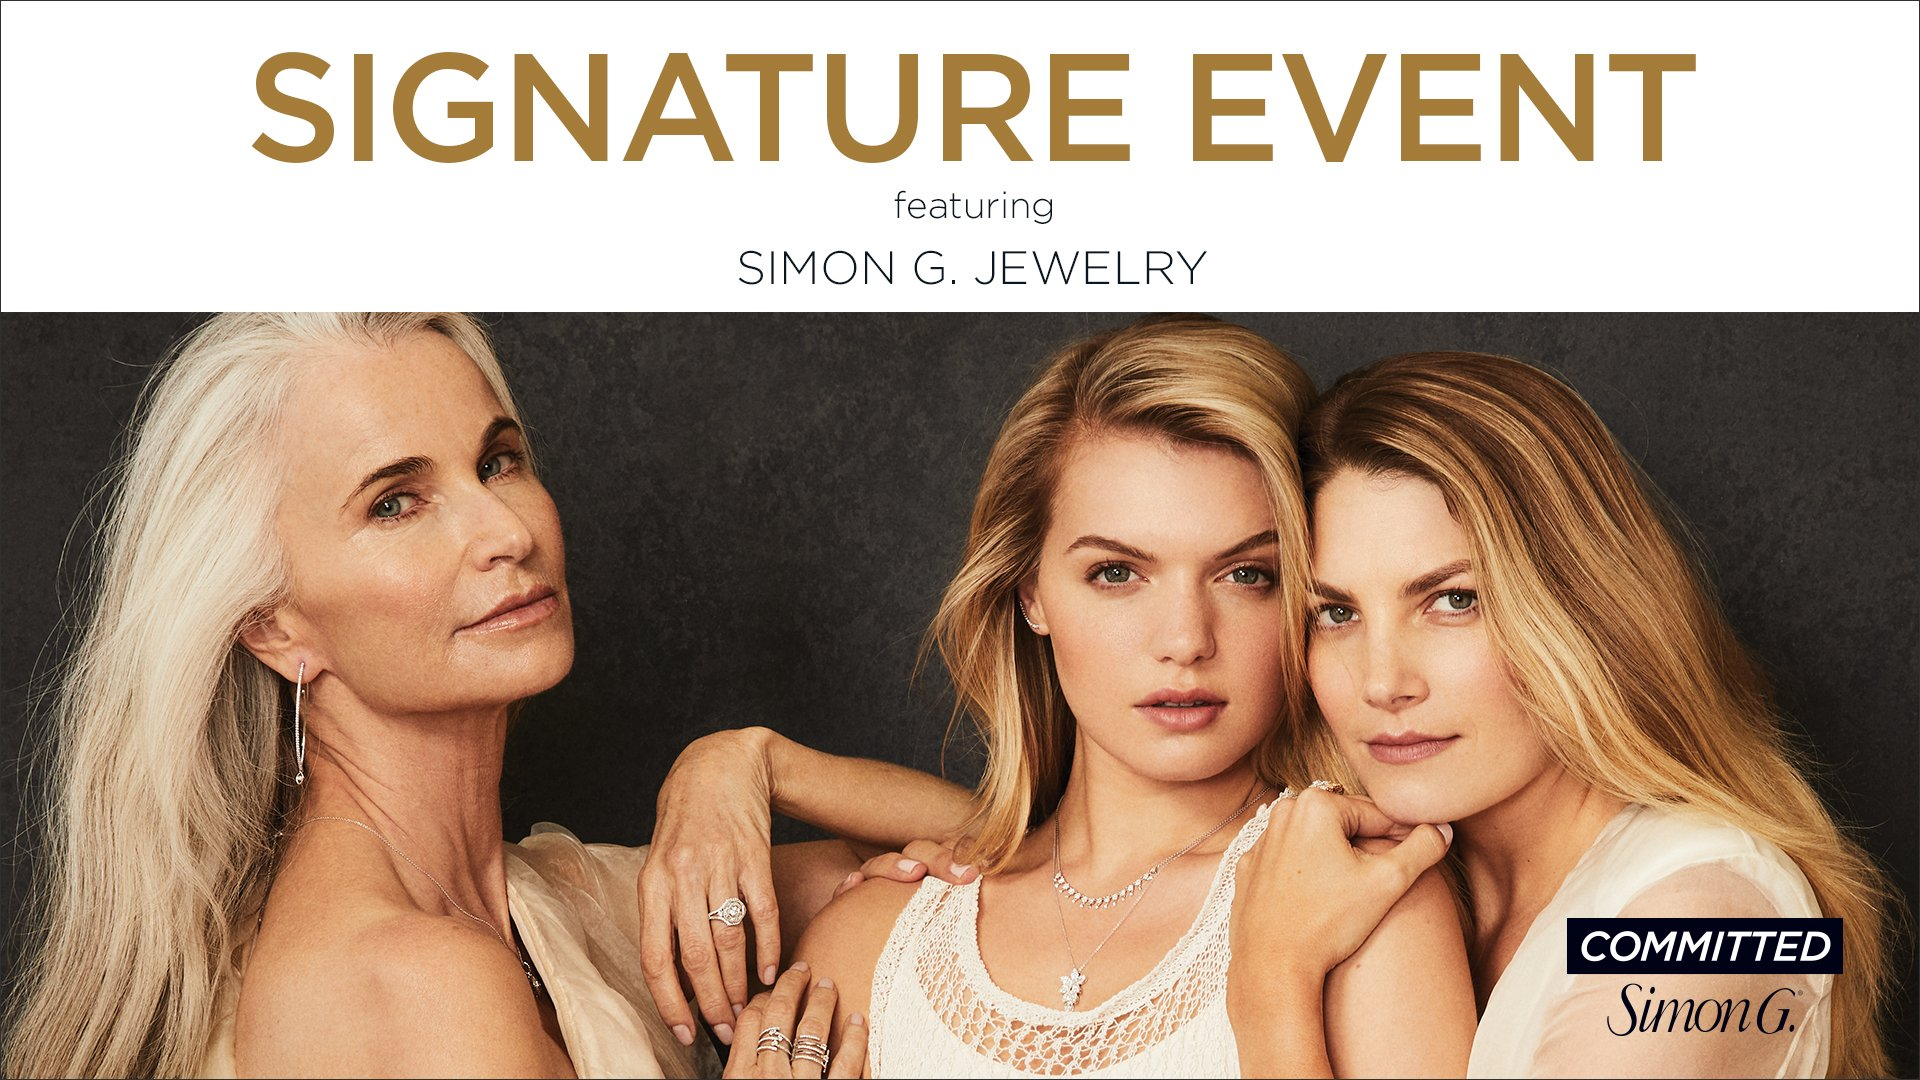 Event at A&J Jewelers